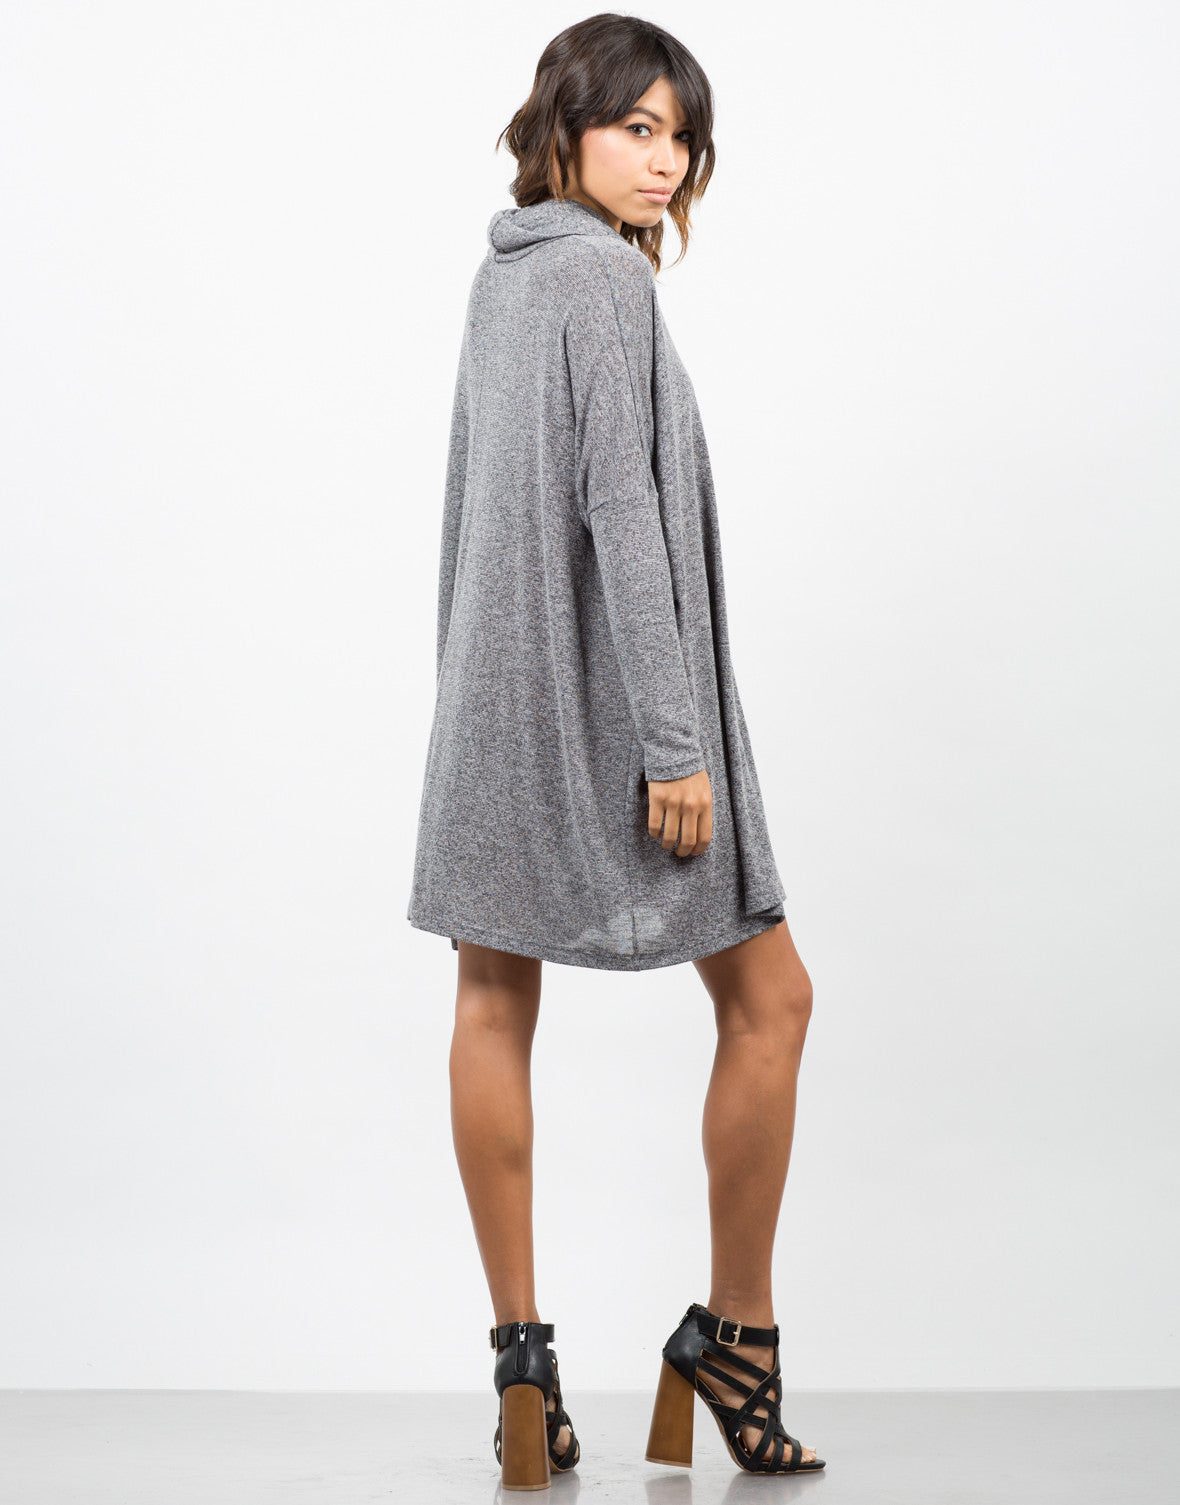 Back View of Cowl Neck Oversized Dress